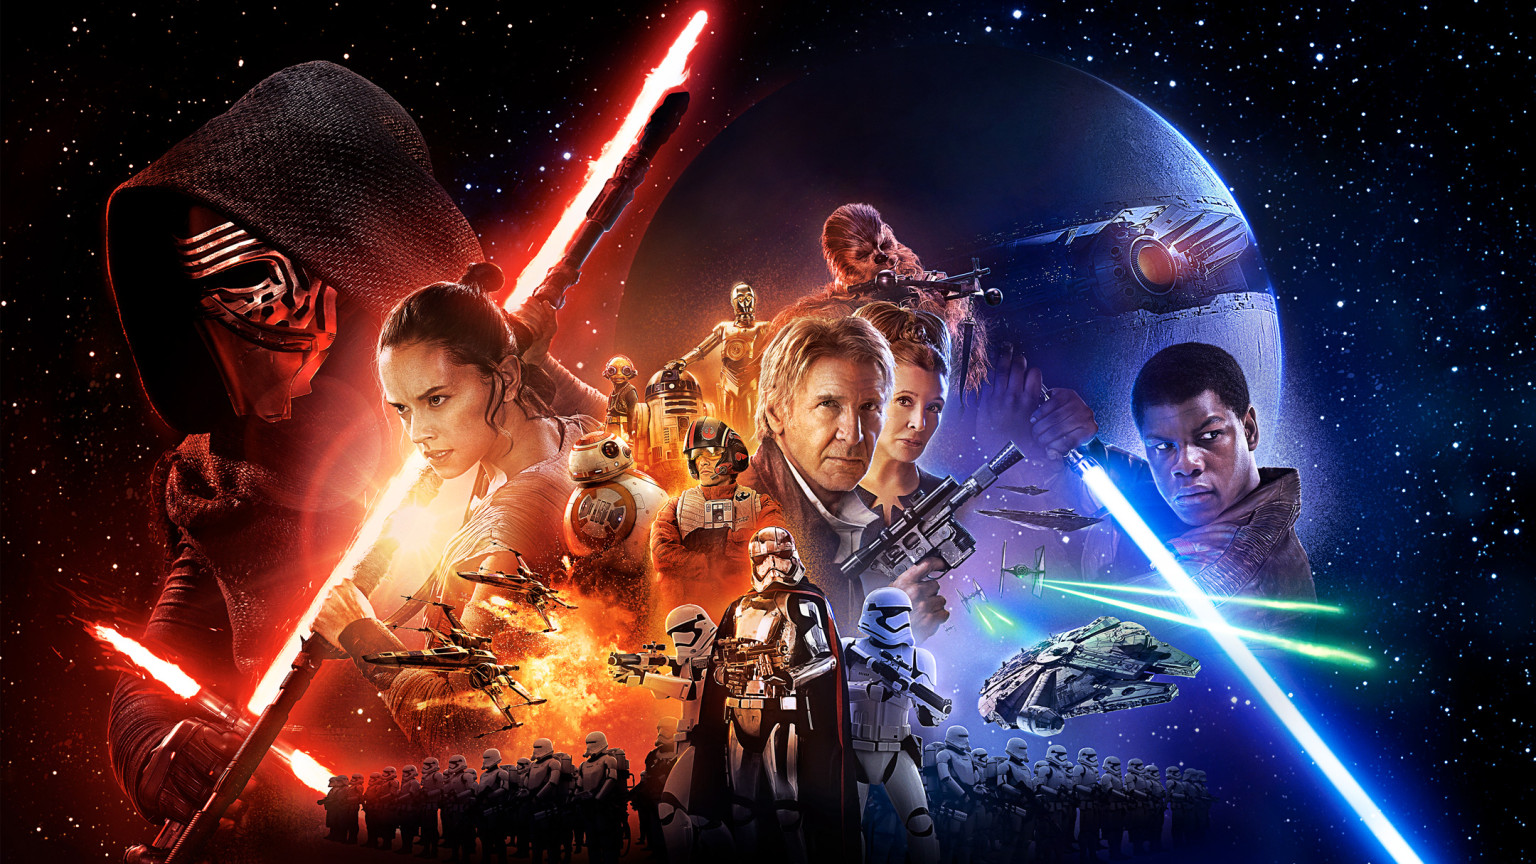 Review: Star Wars: The Force Awakens (SPOILER FREE)